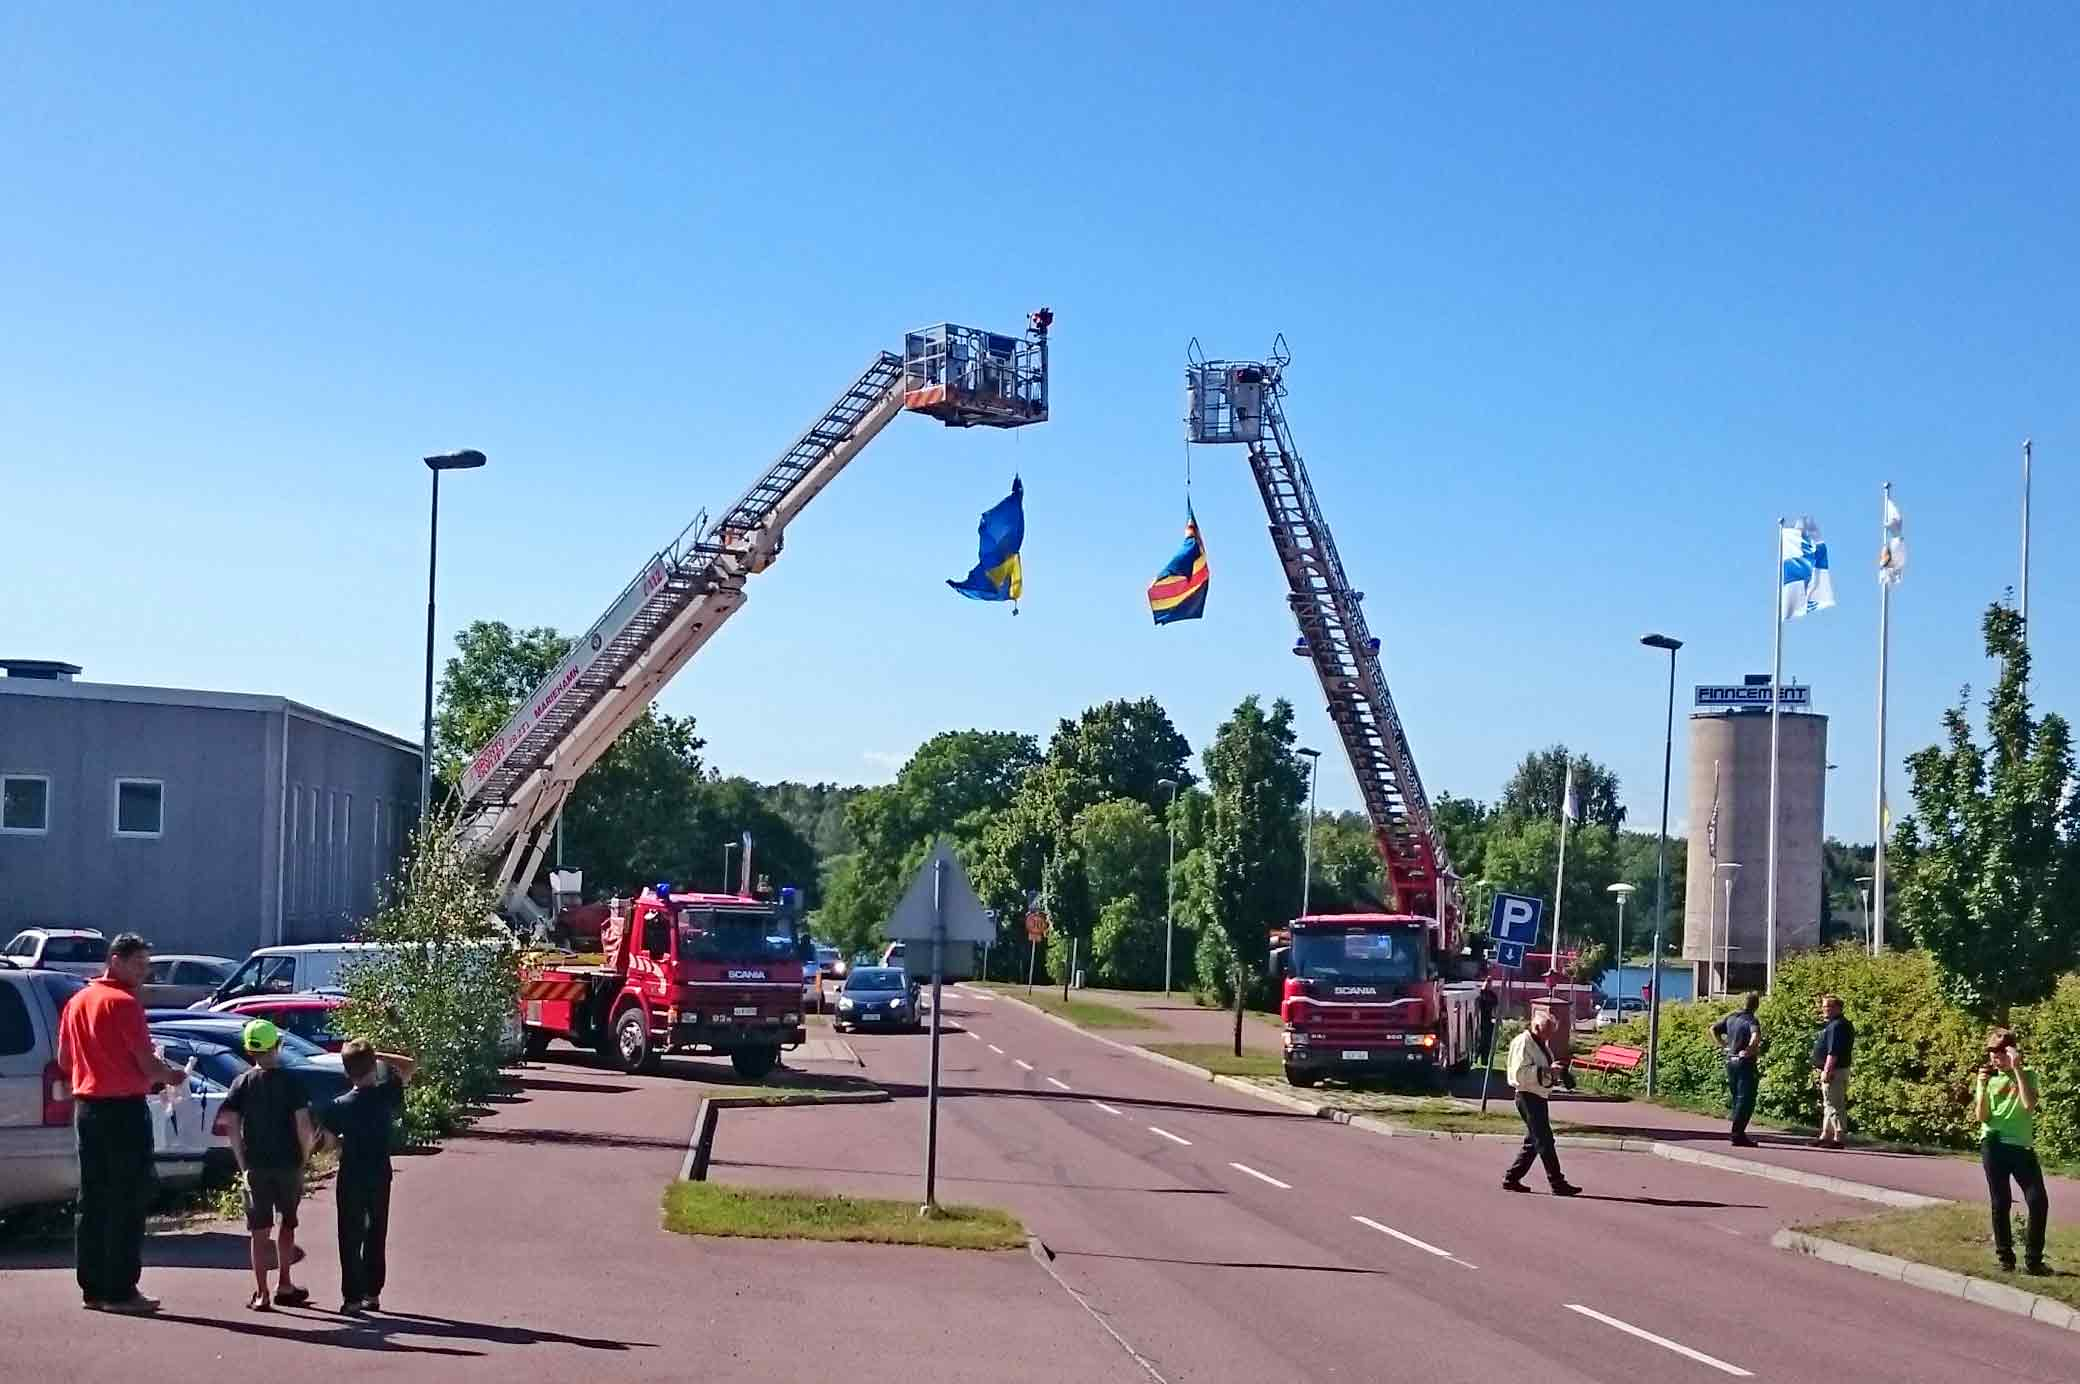 Åland-6.-sept-2015-red-w